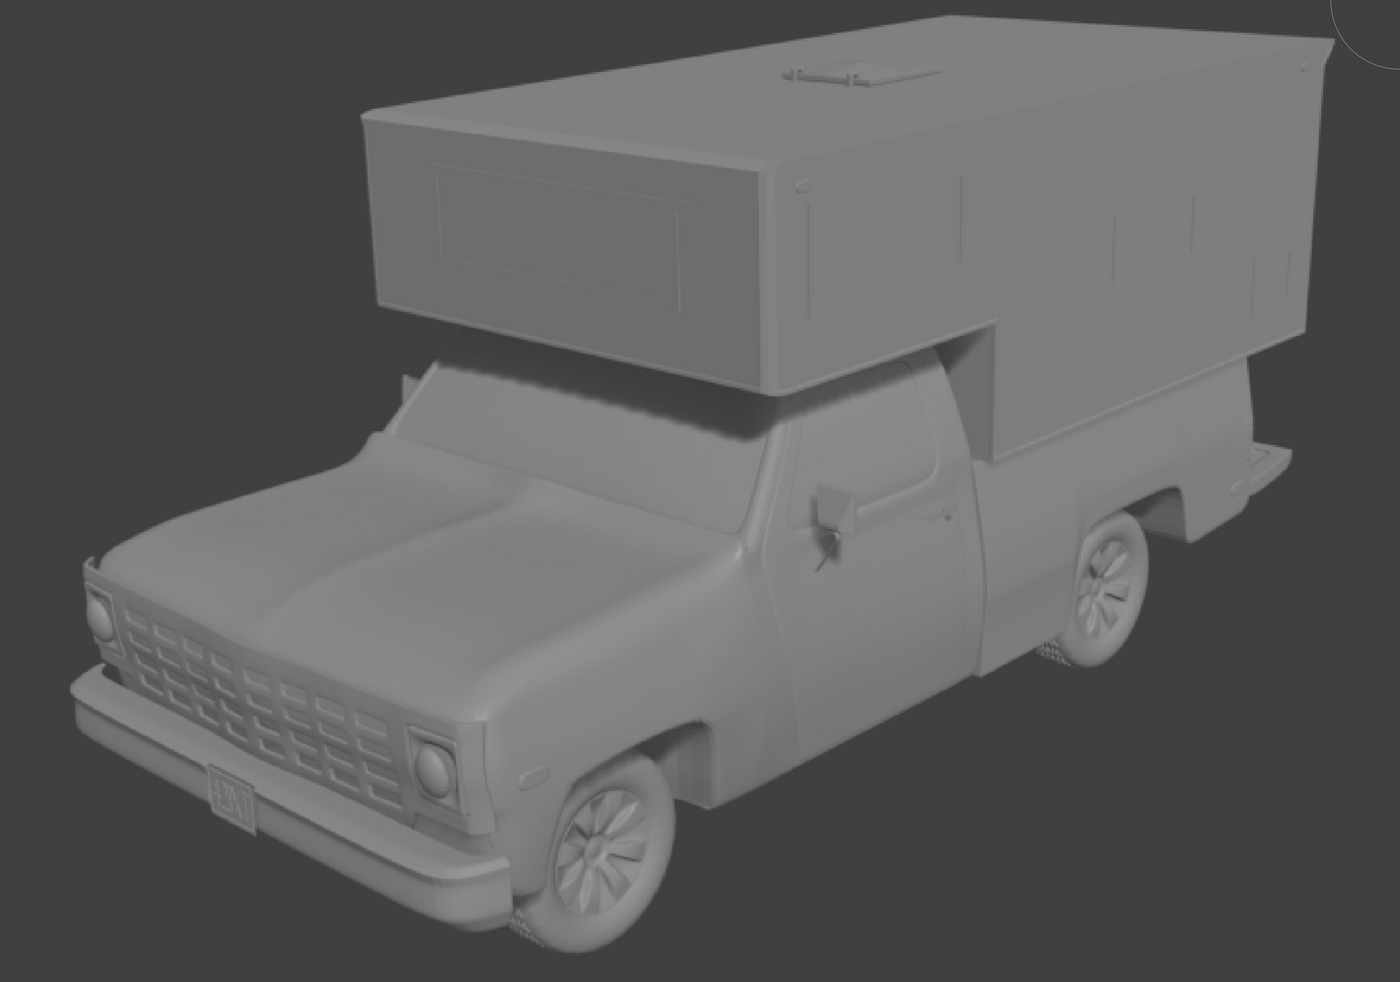 Family Roadtrip - phase 2 - add some color detail hopefully to be replaced by proper textures and normal maps later.